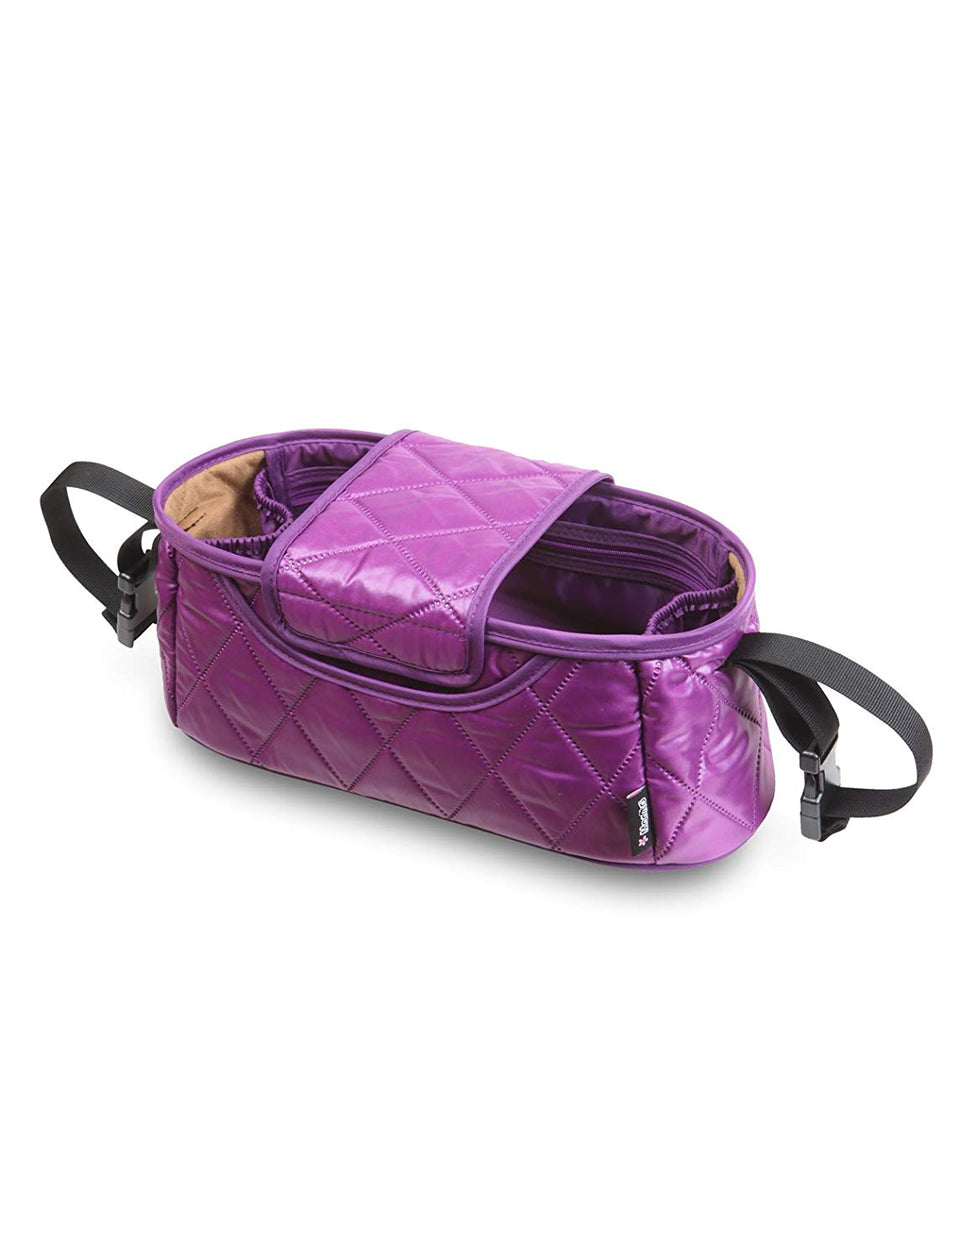 Handy Stroller Organizer (Purple/Diamond)